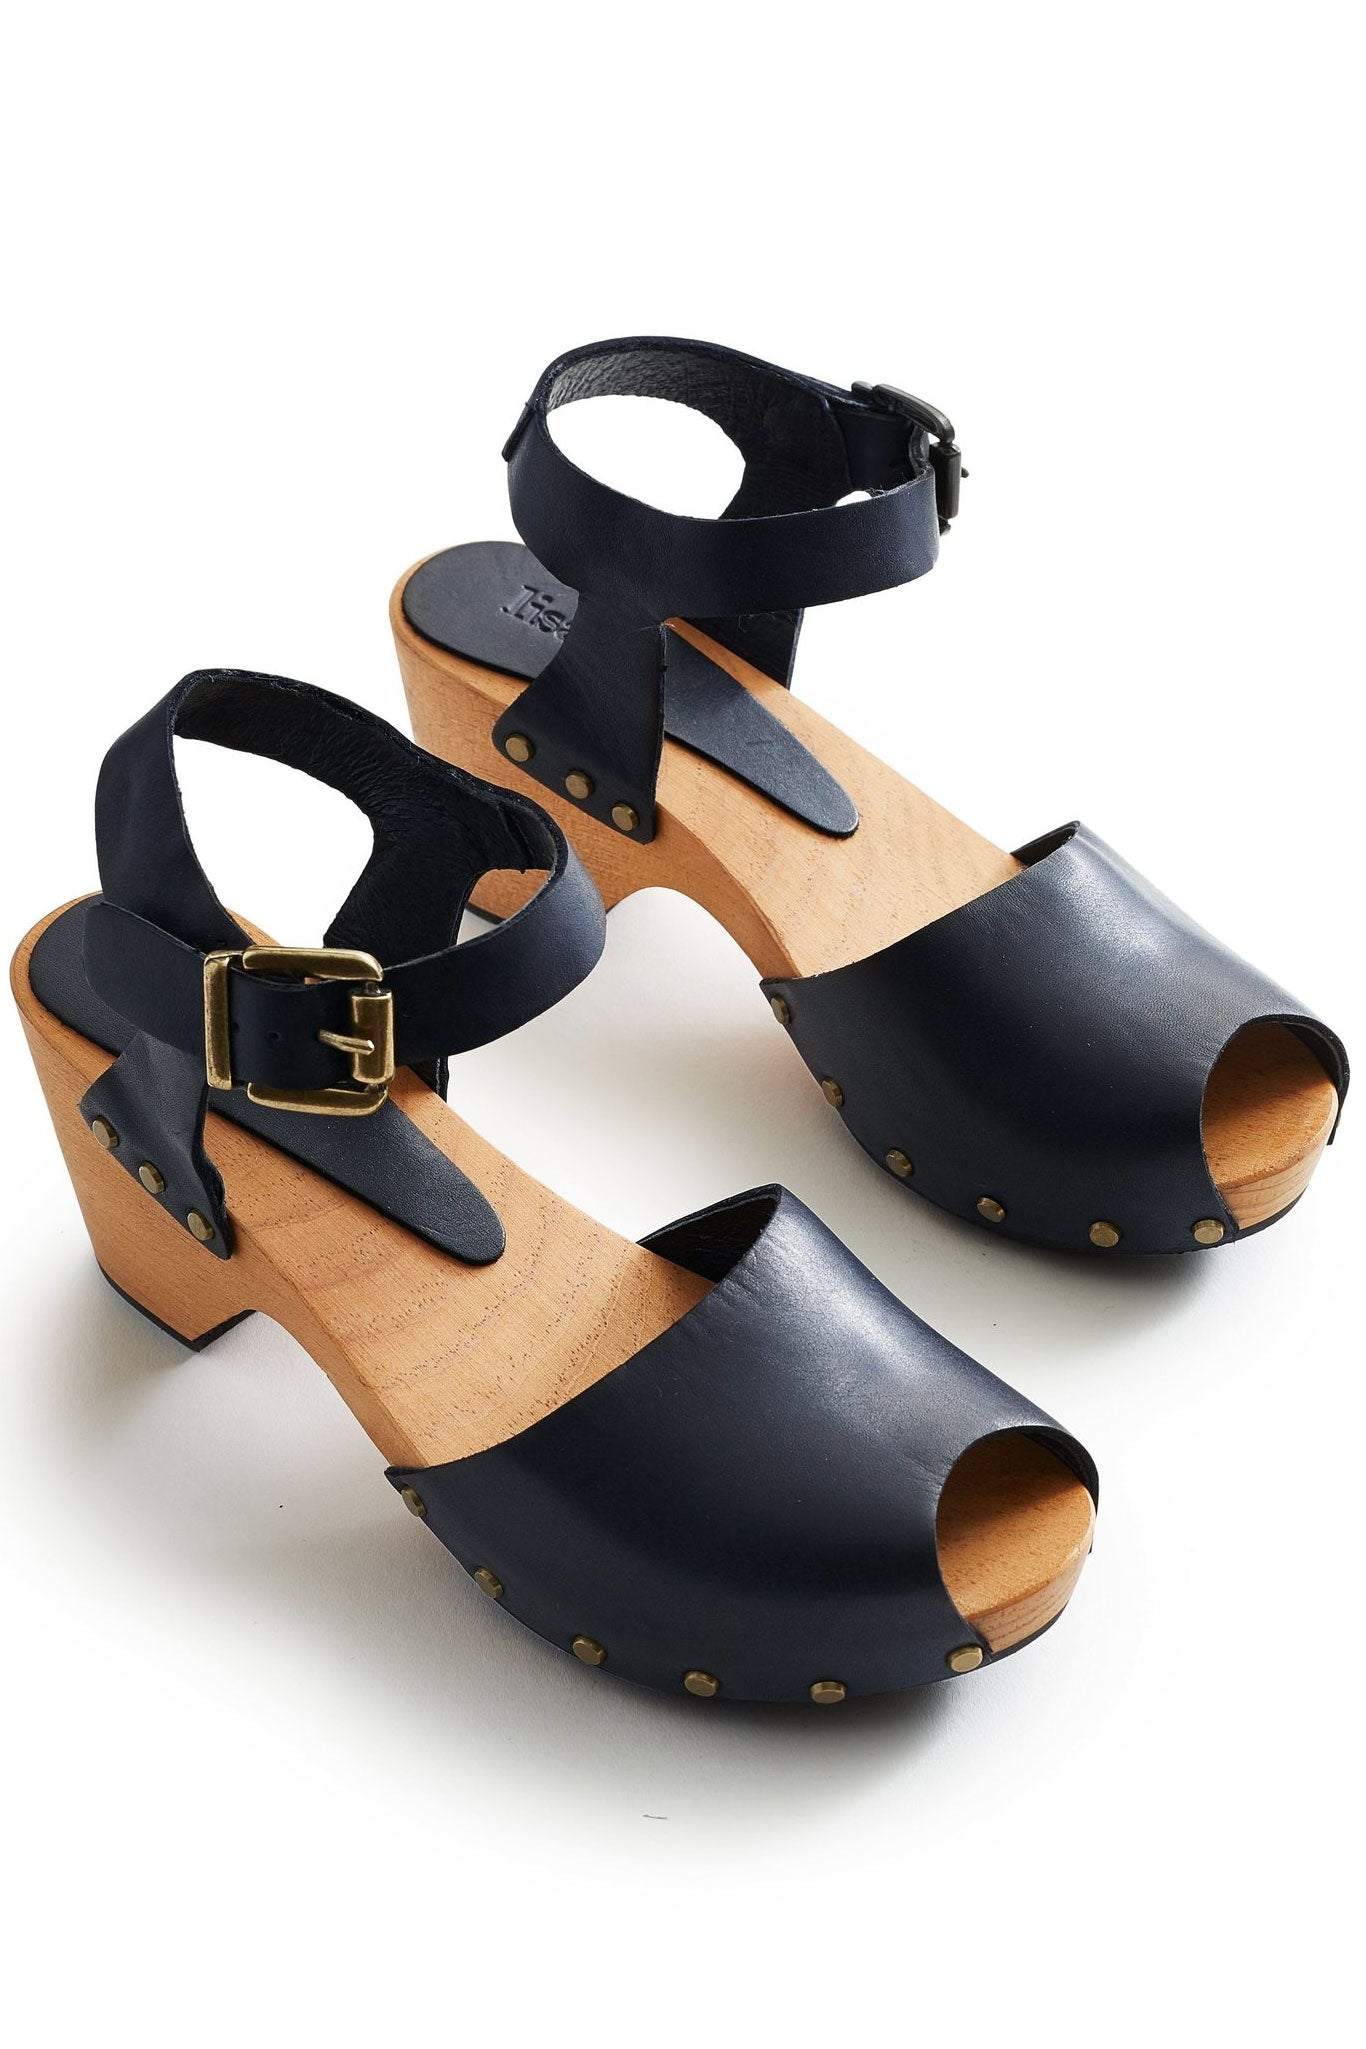 lisa b. Peep Toe Clogs - Dark Navy